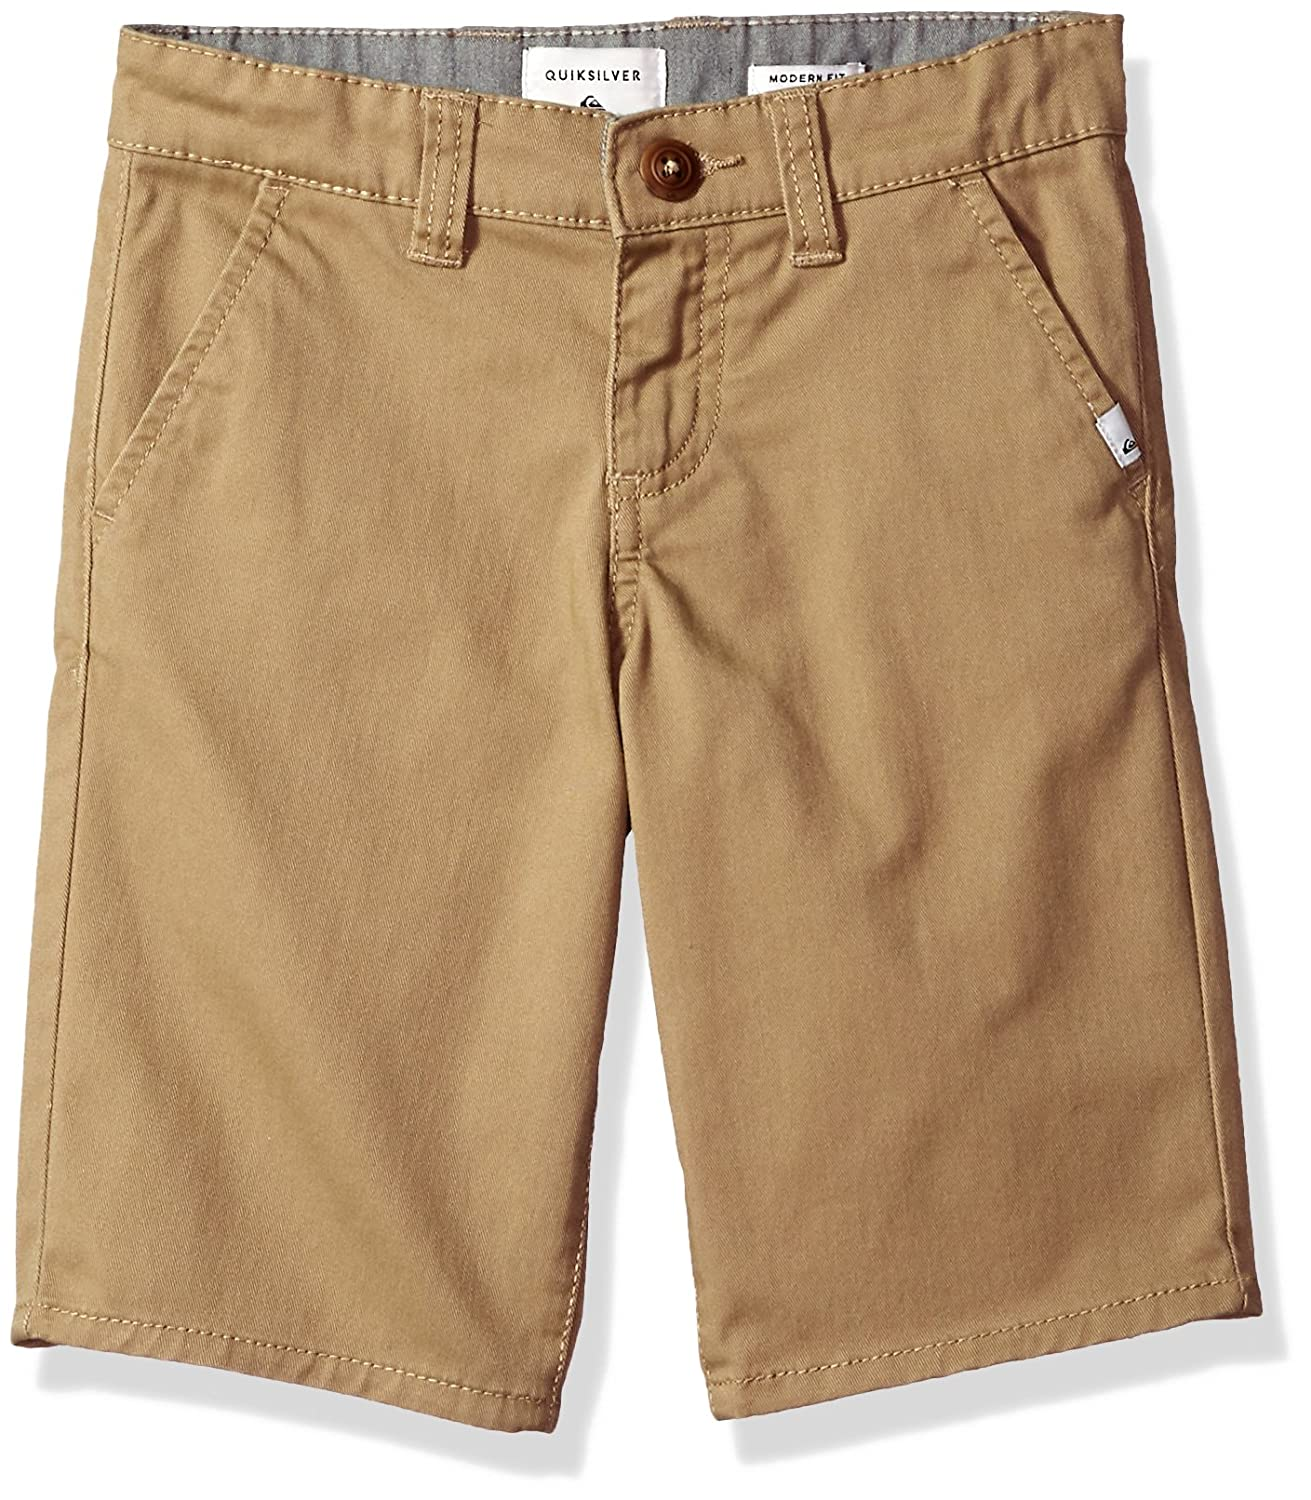 Quiksilver Boys 2-7 Everyday Union - Chino Shorts Size 6